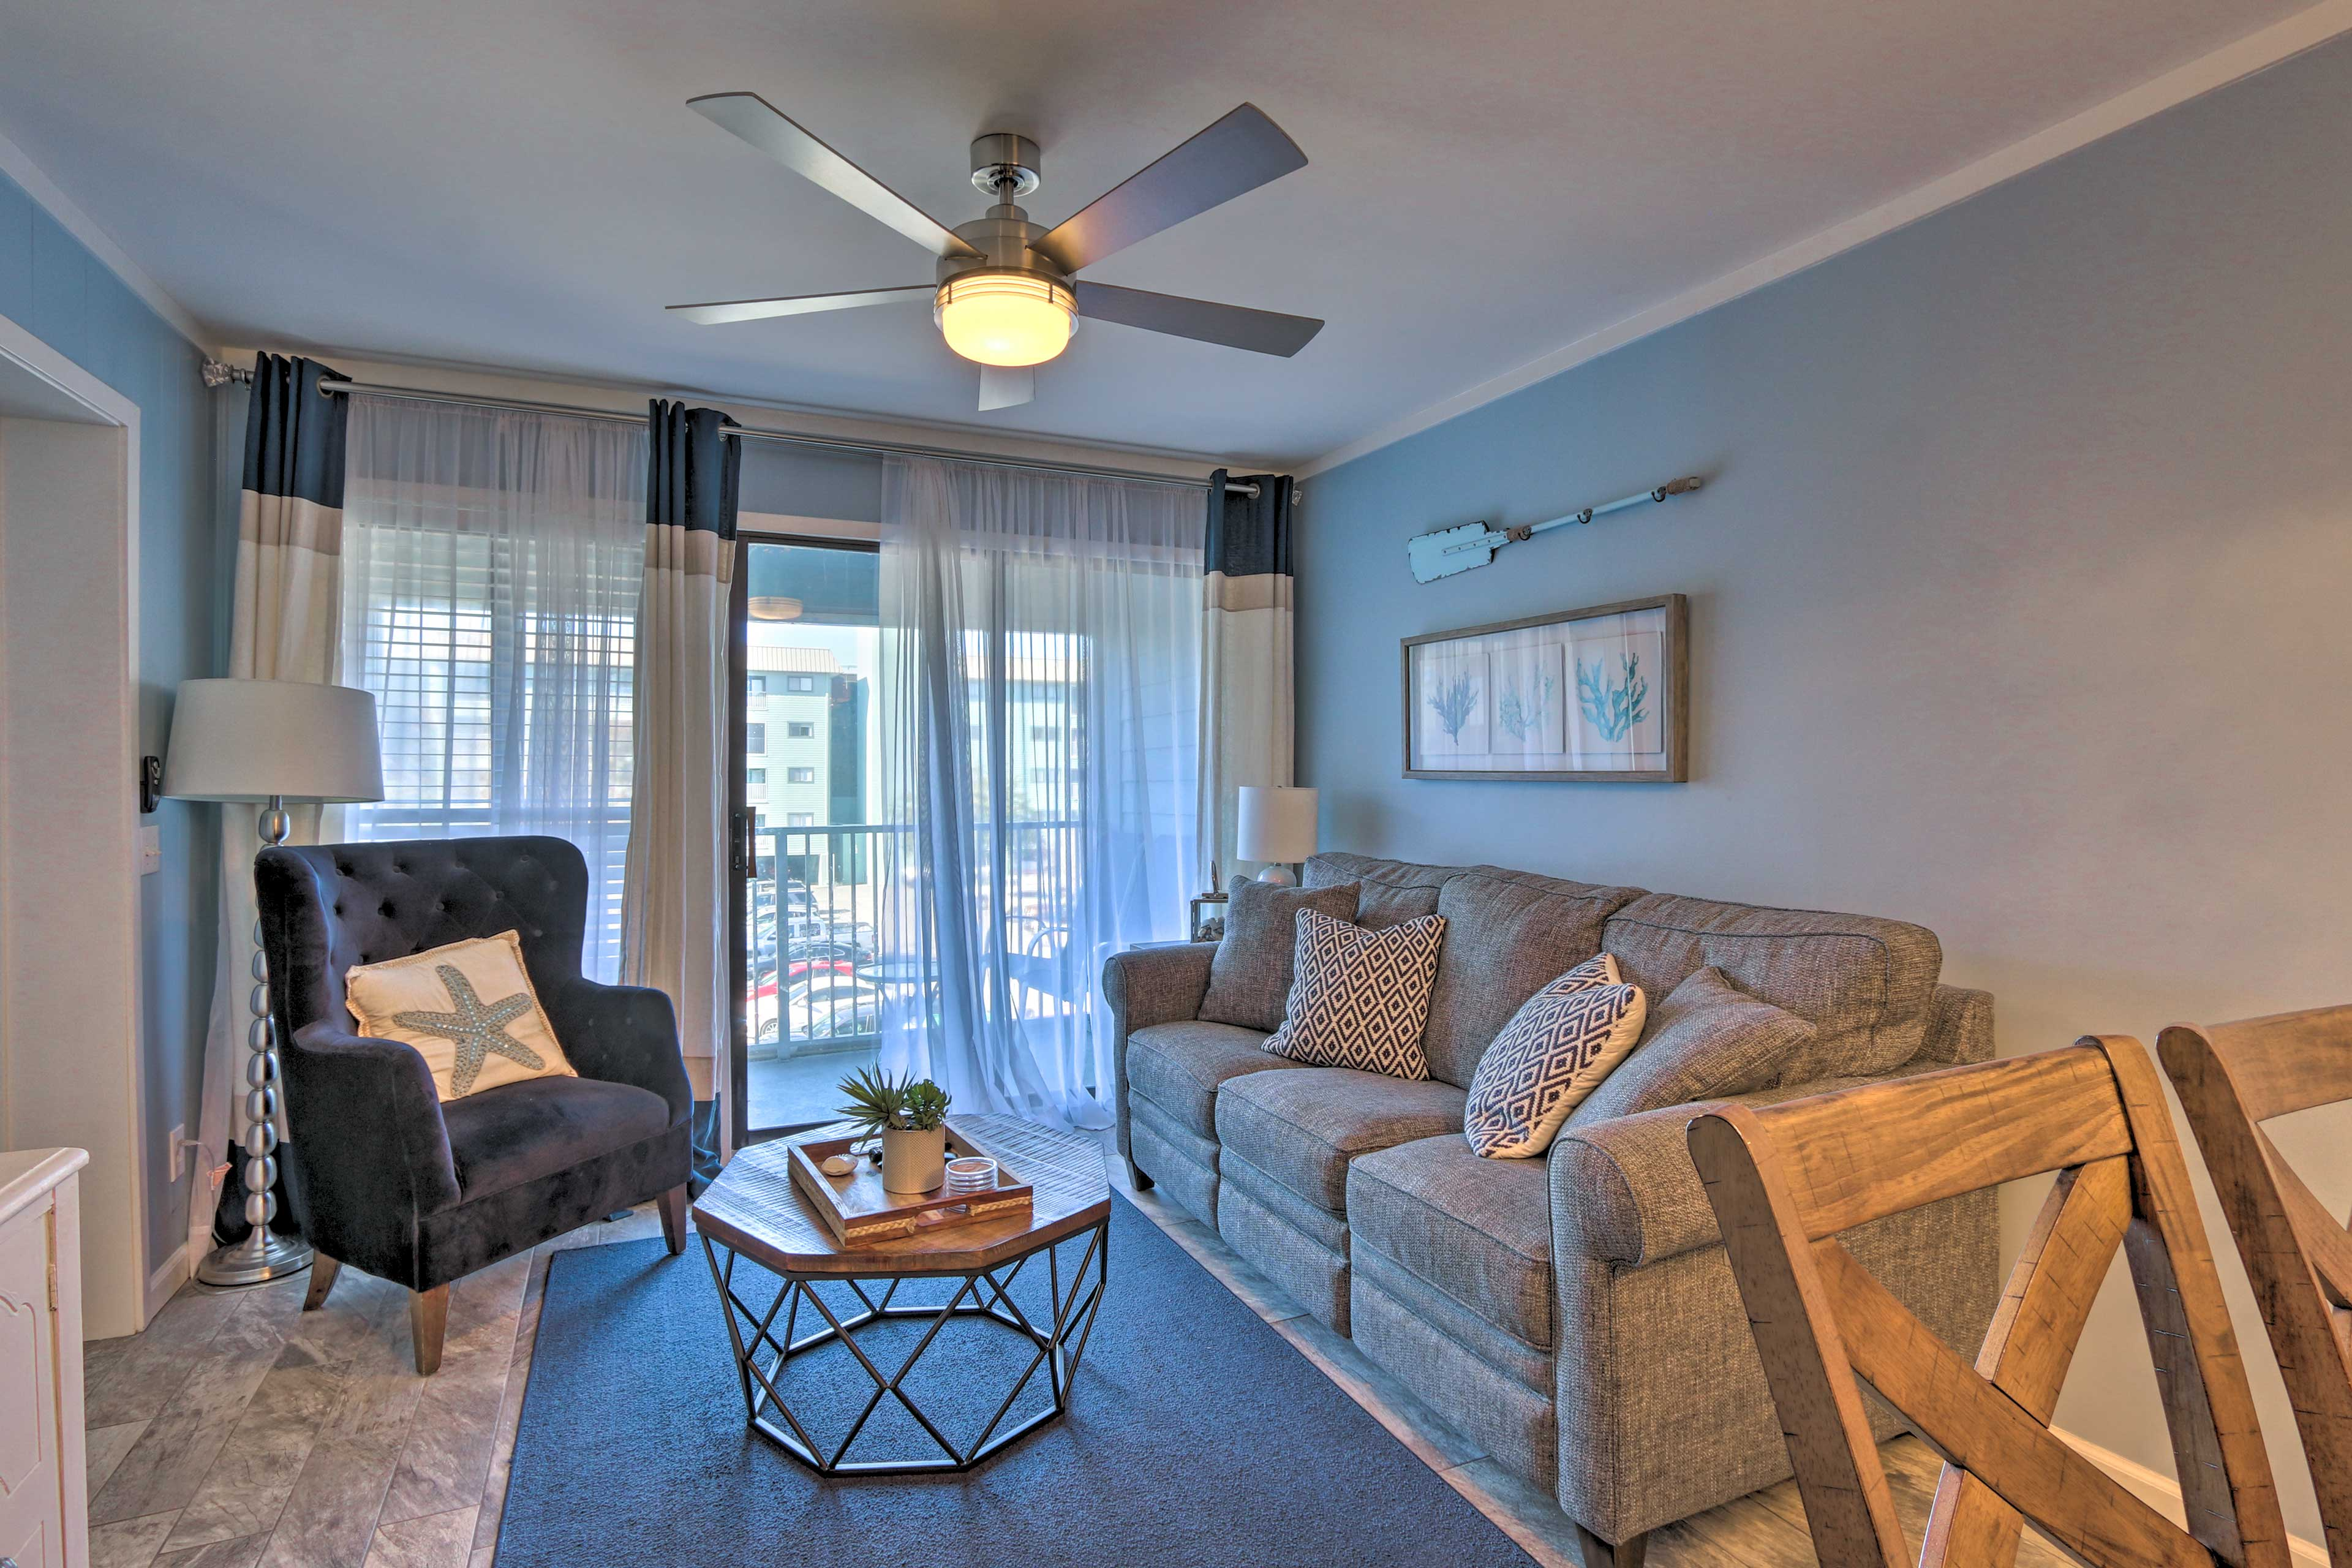 Step inside the updated condo to find bright hues and inviting beach decor.